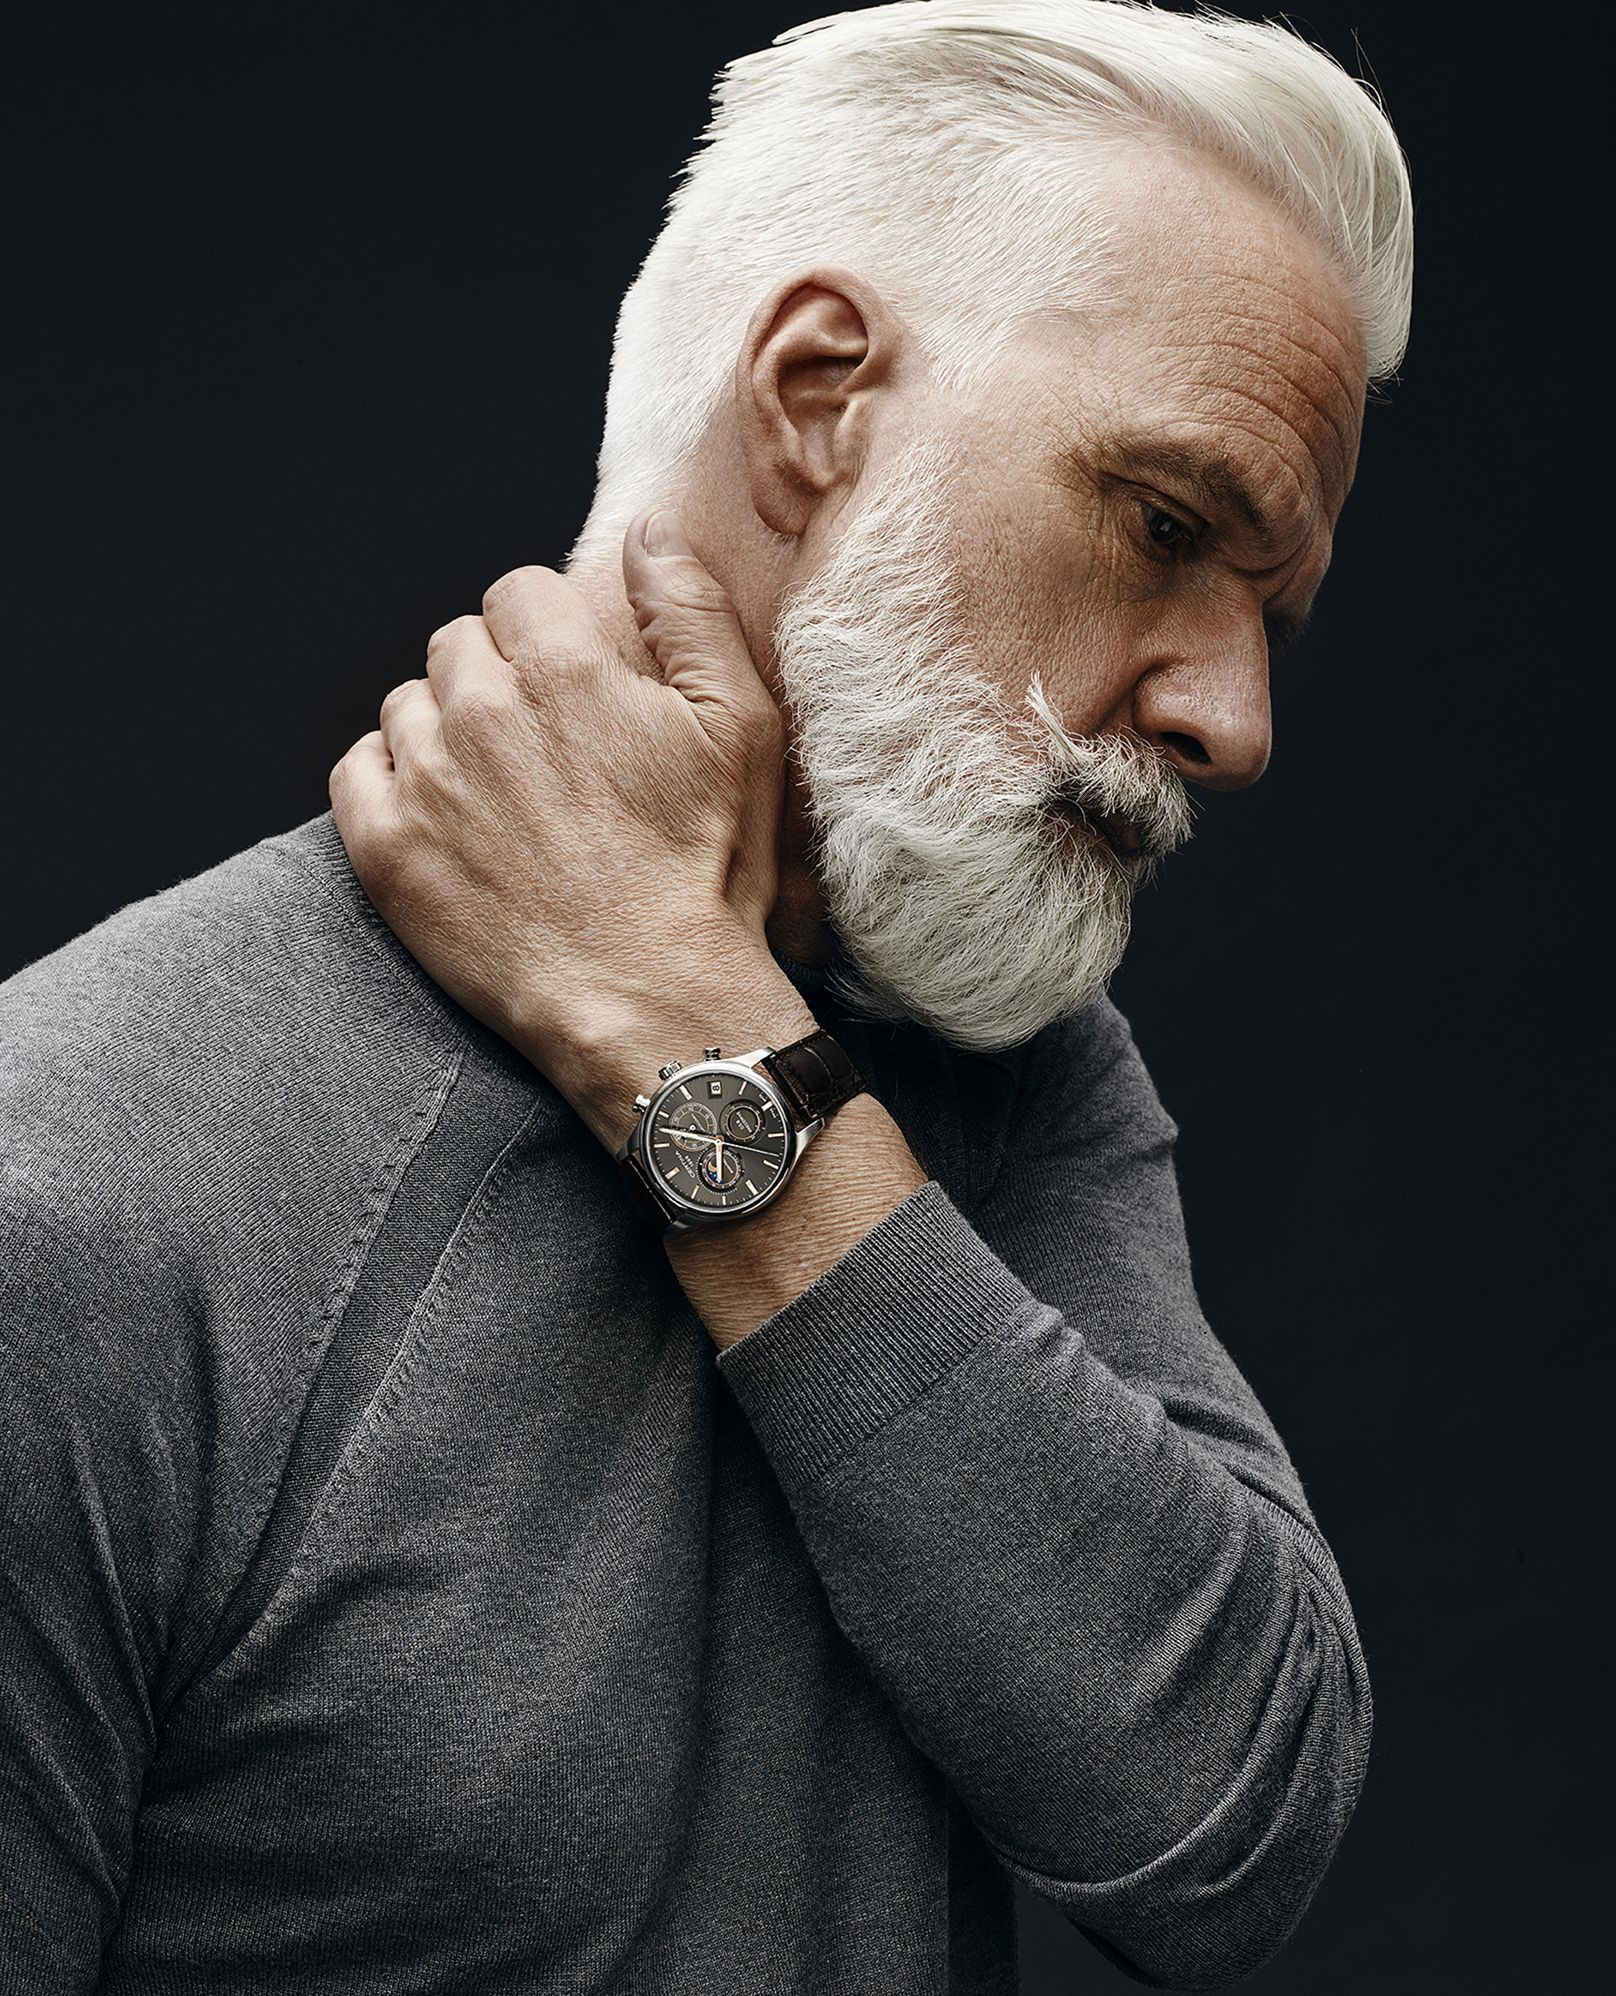 Haircuts for older men  best gray haired and beard men ideas